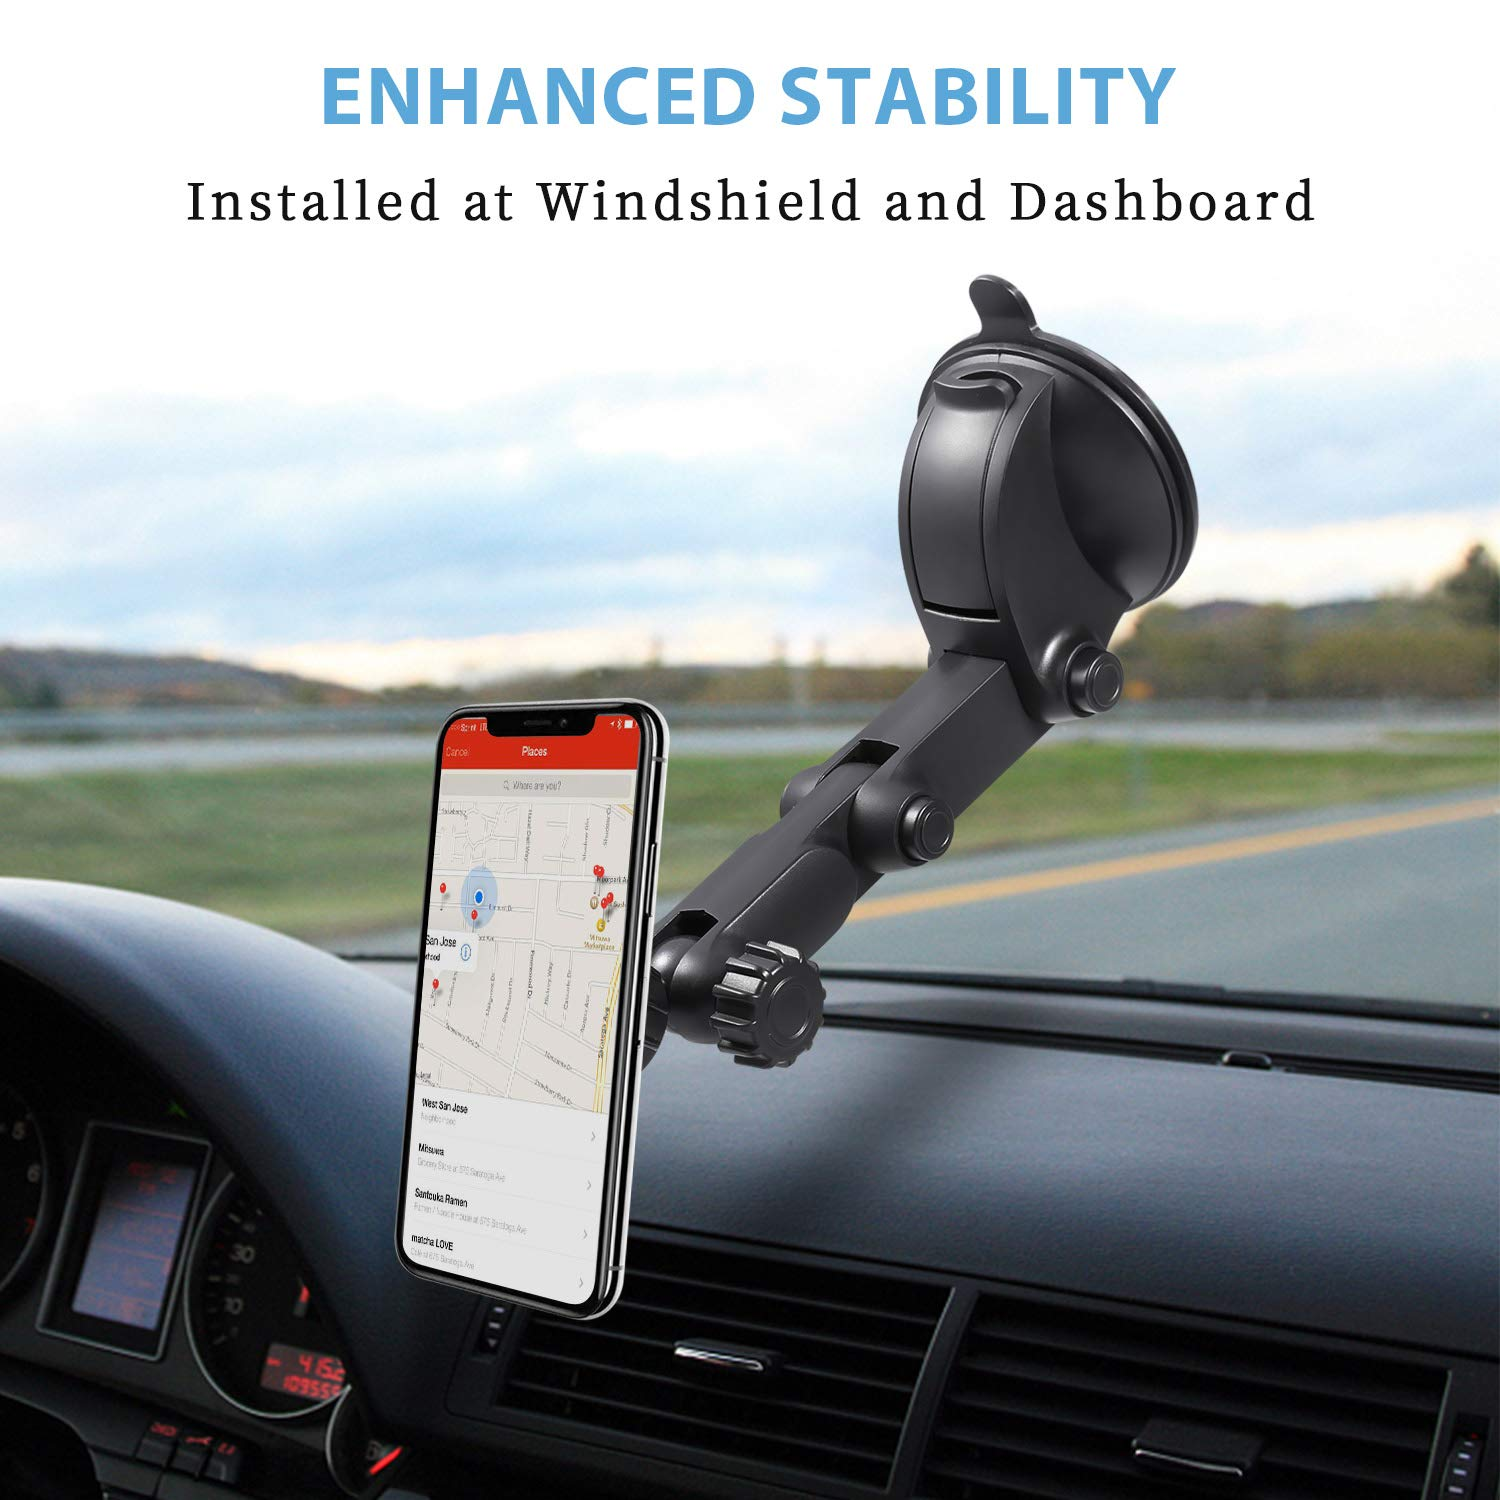 Magnetic Car Phone Mount,Beyyon Dashboard Windshield 5 Magnets and Unique Design with Flexible Viewing Angle Car Phone Holder Compatible with iPhone X/8/8P/7/7 Plus Galaxy S9/S9 Plus Edge